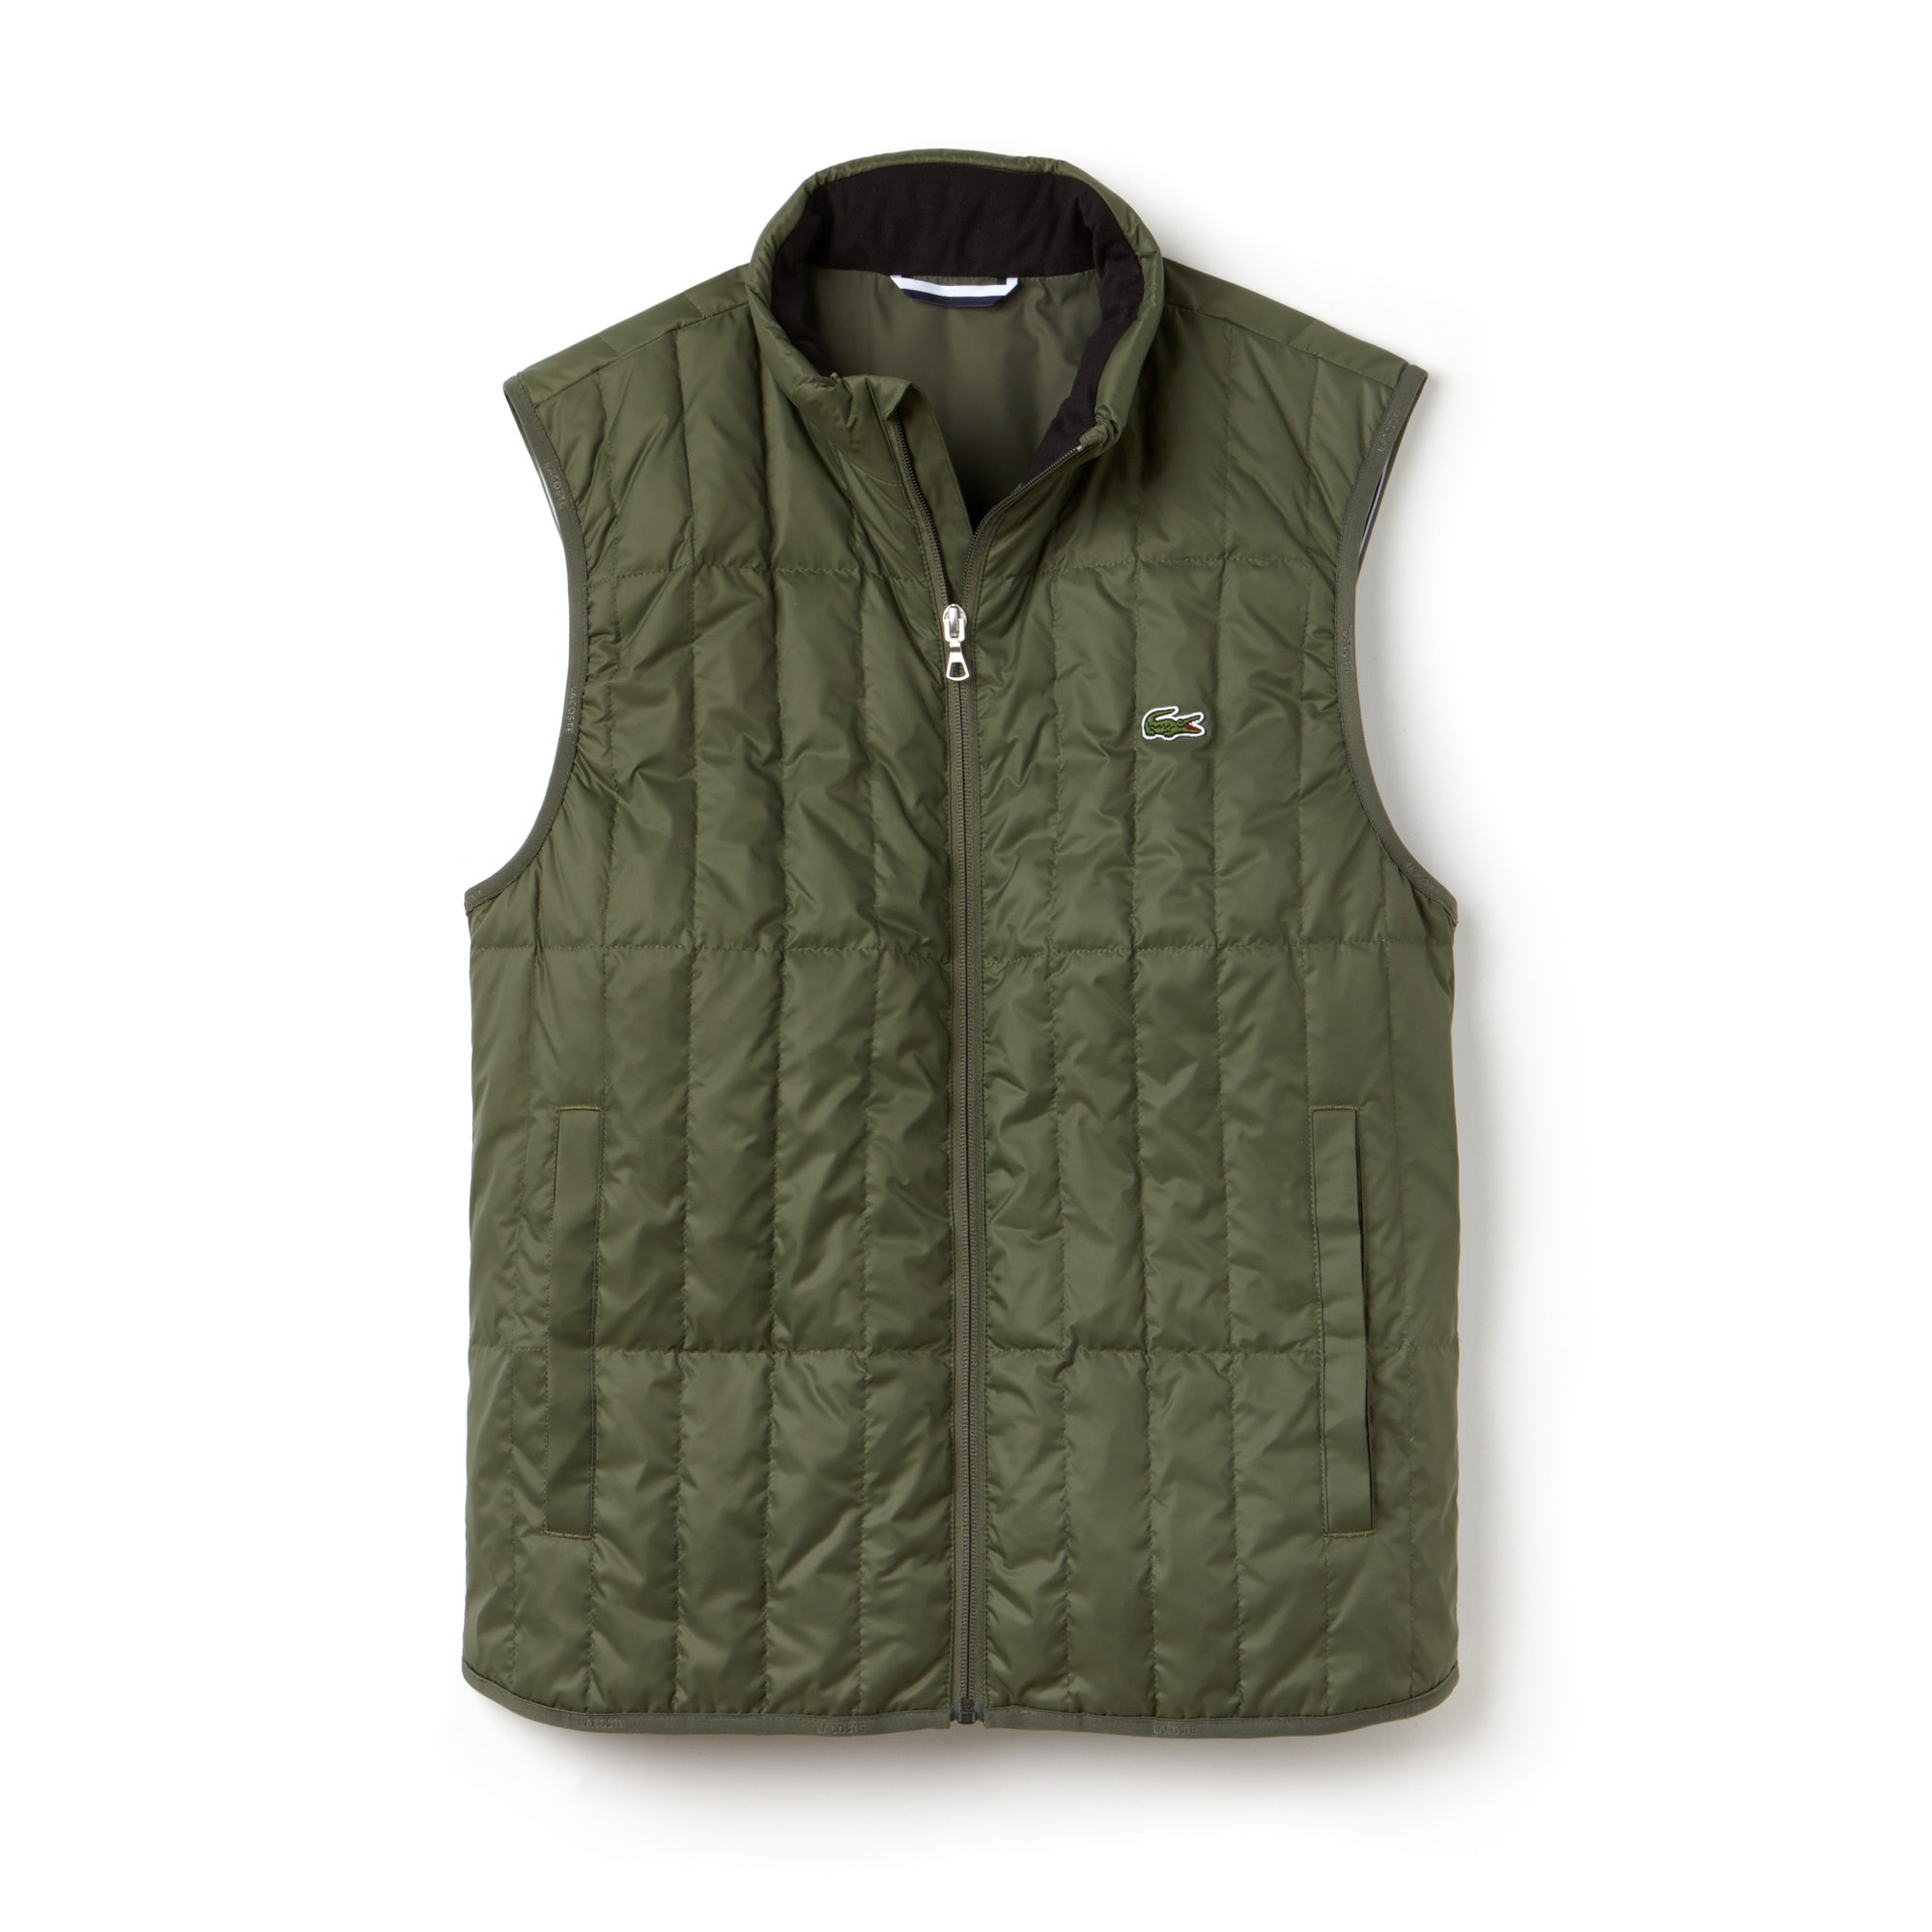 Men's Built-in Hood Quilted Vest